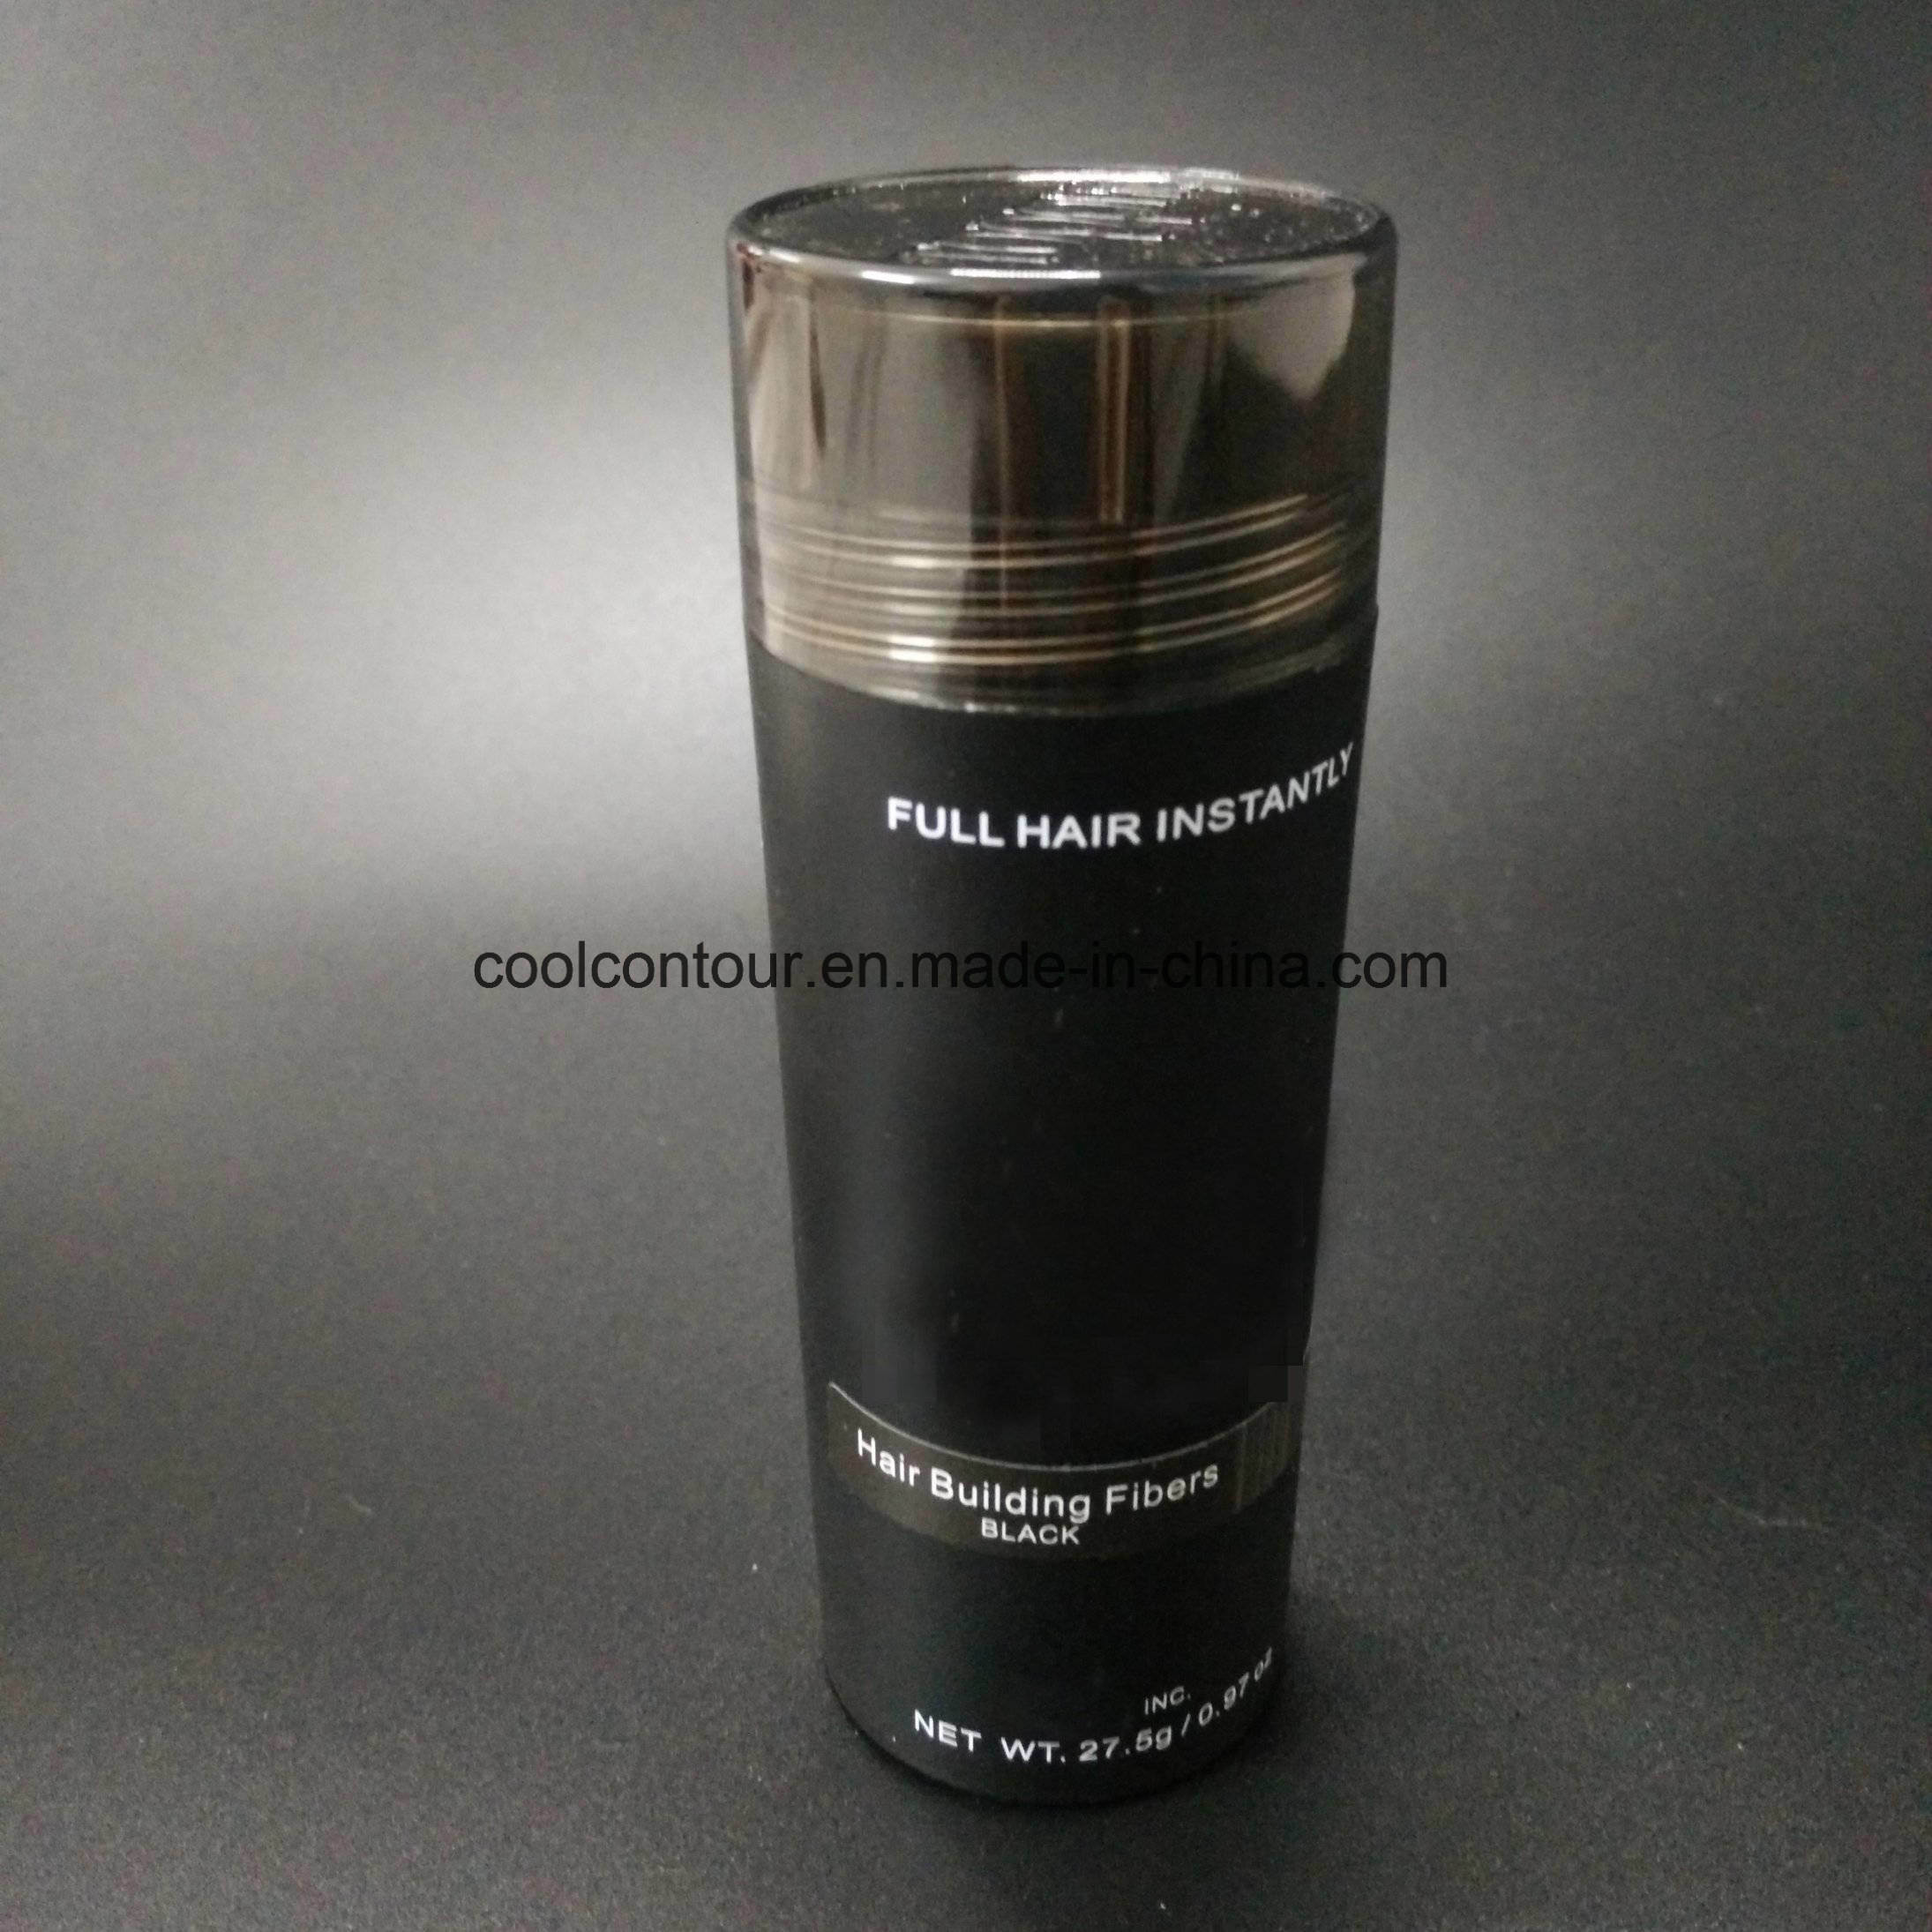 Factory Price High Quality Keratin Hair Building Fibers Powder Spray